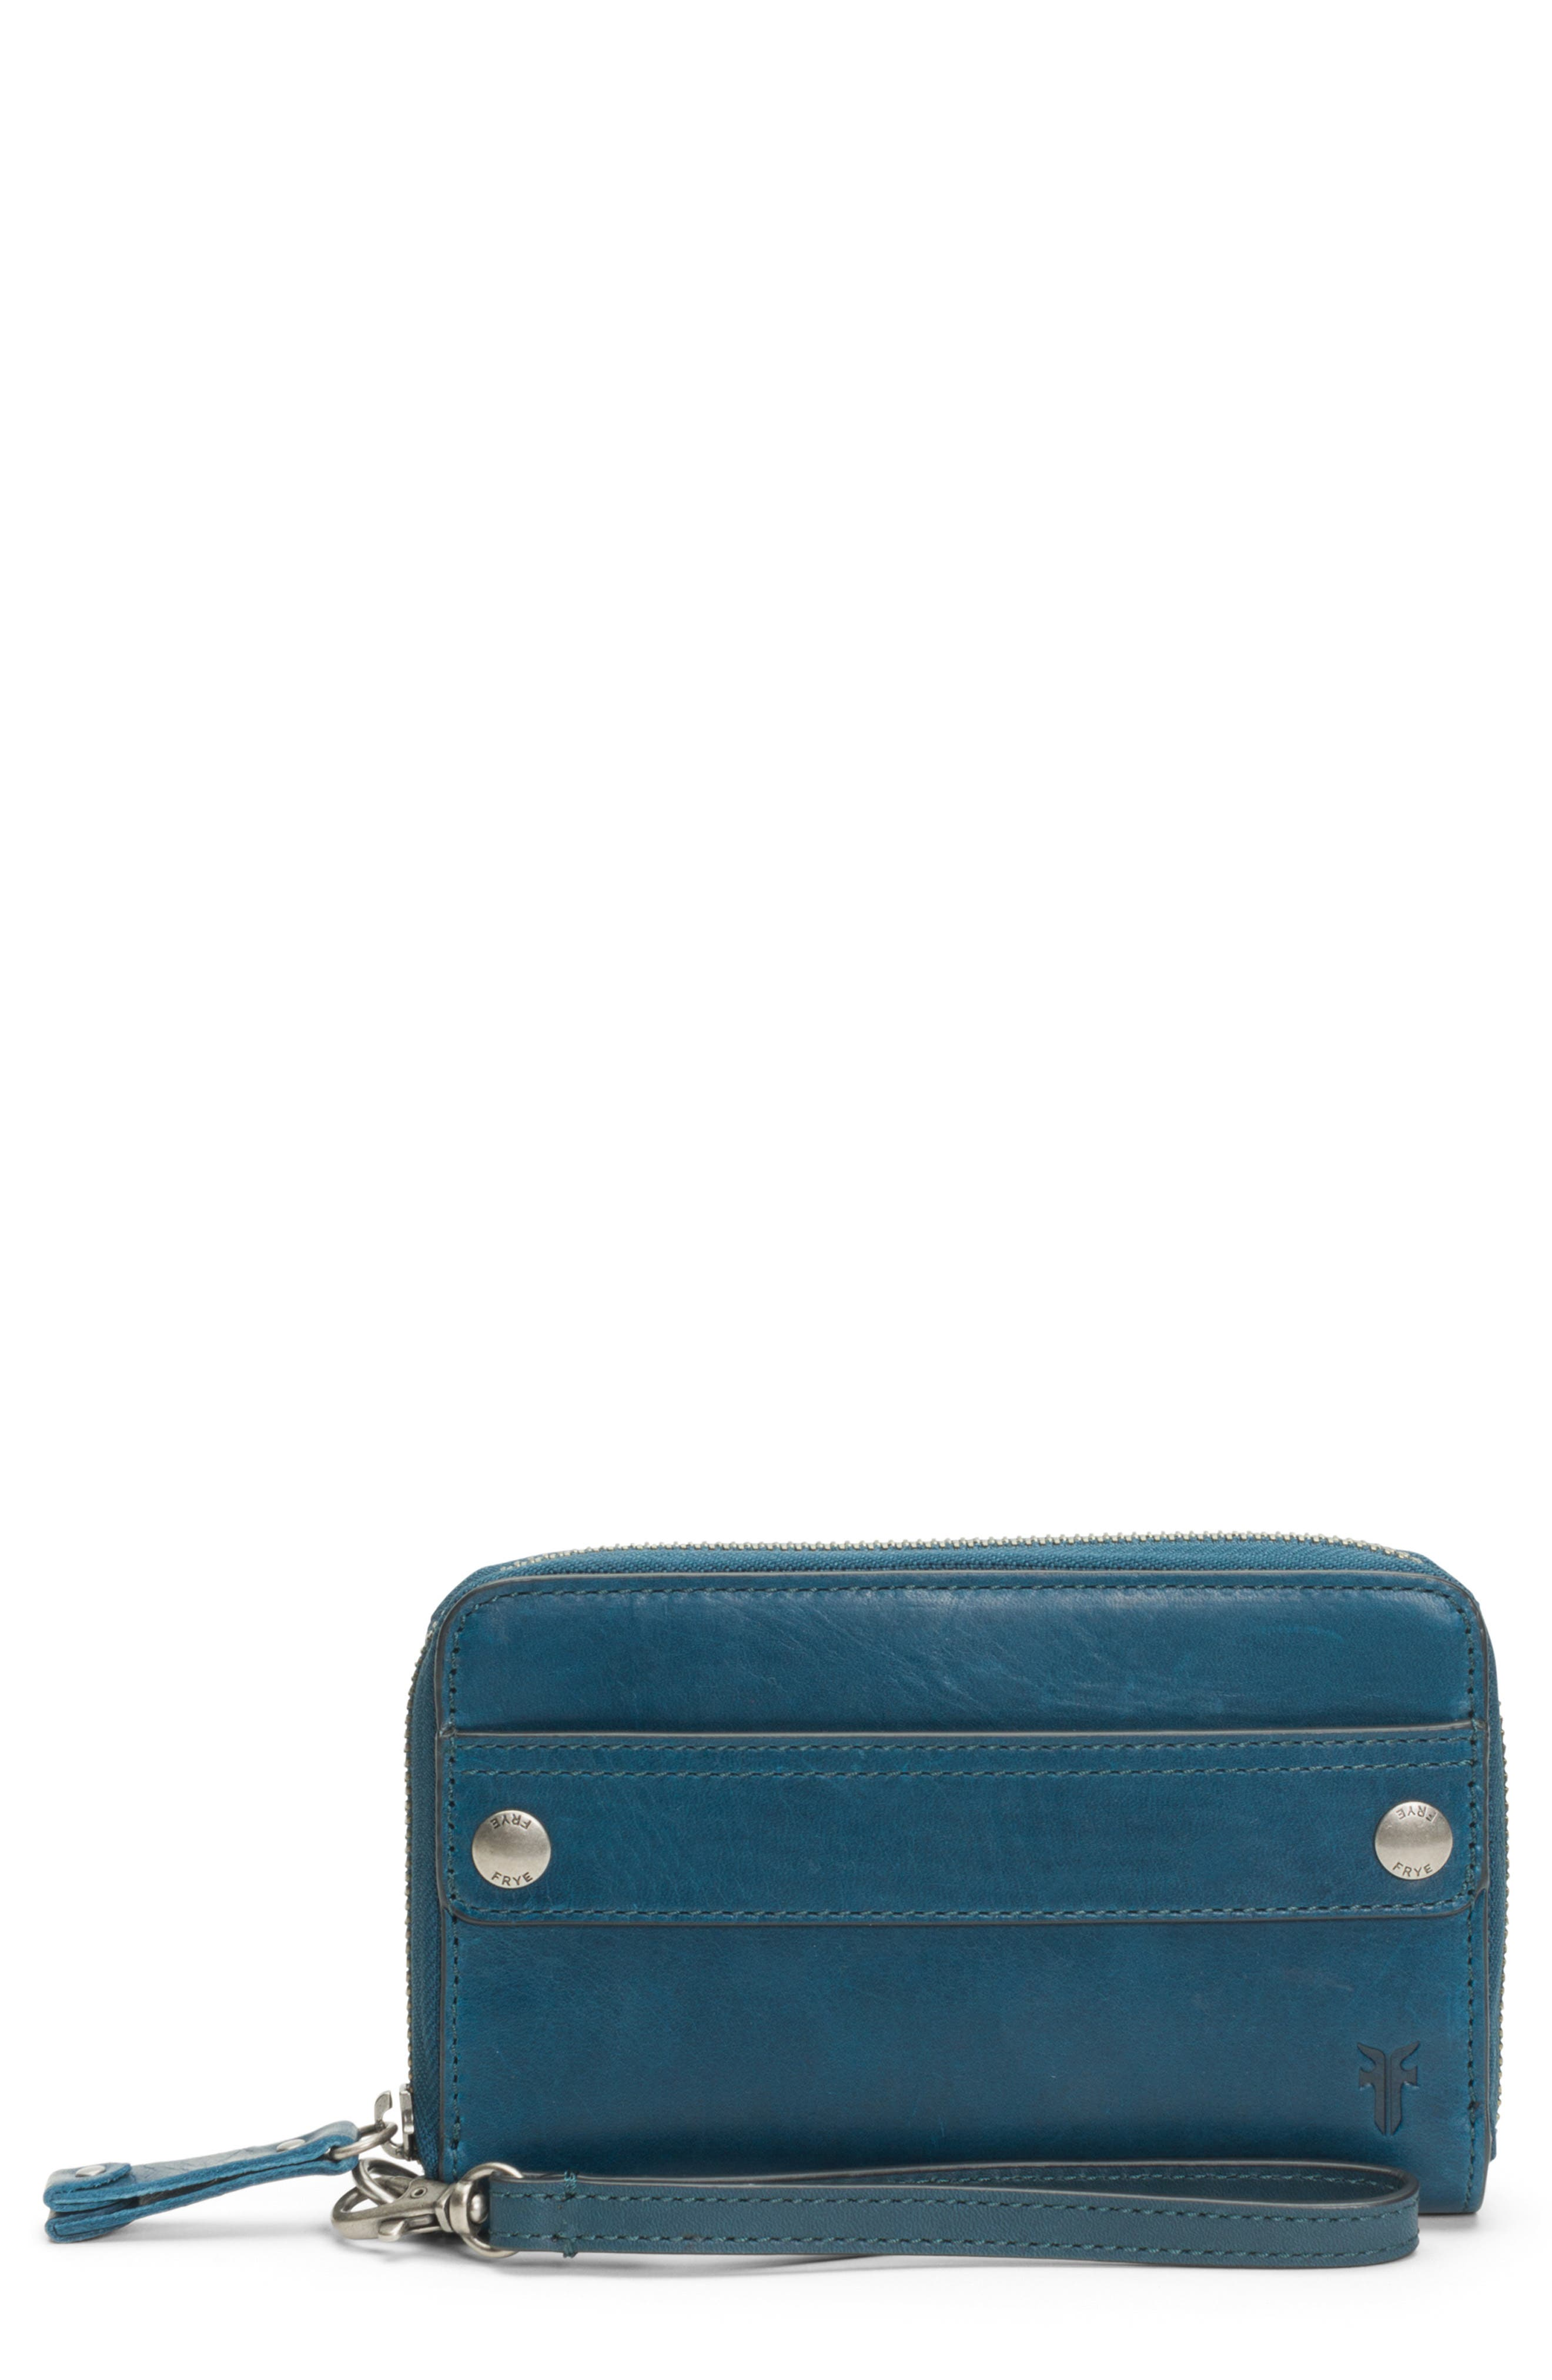 Melissa Large Leather Phone Wallet,                         Main,                         color, PEACOCK